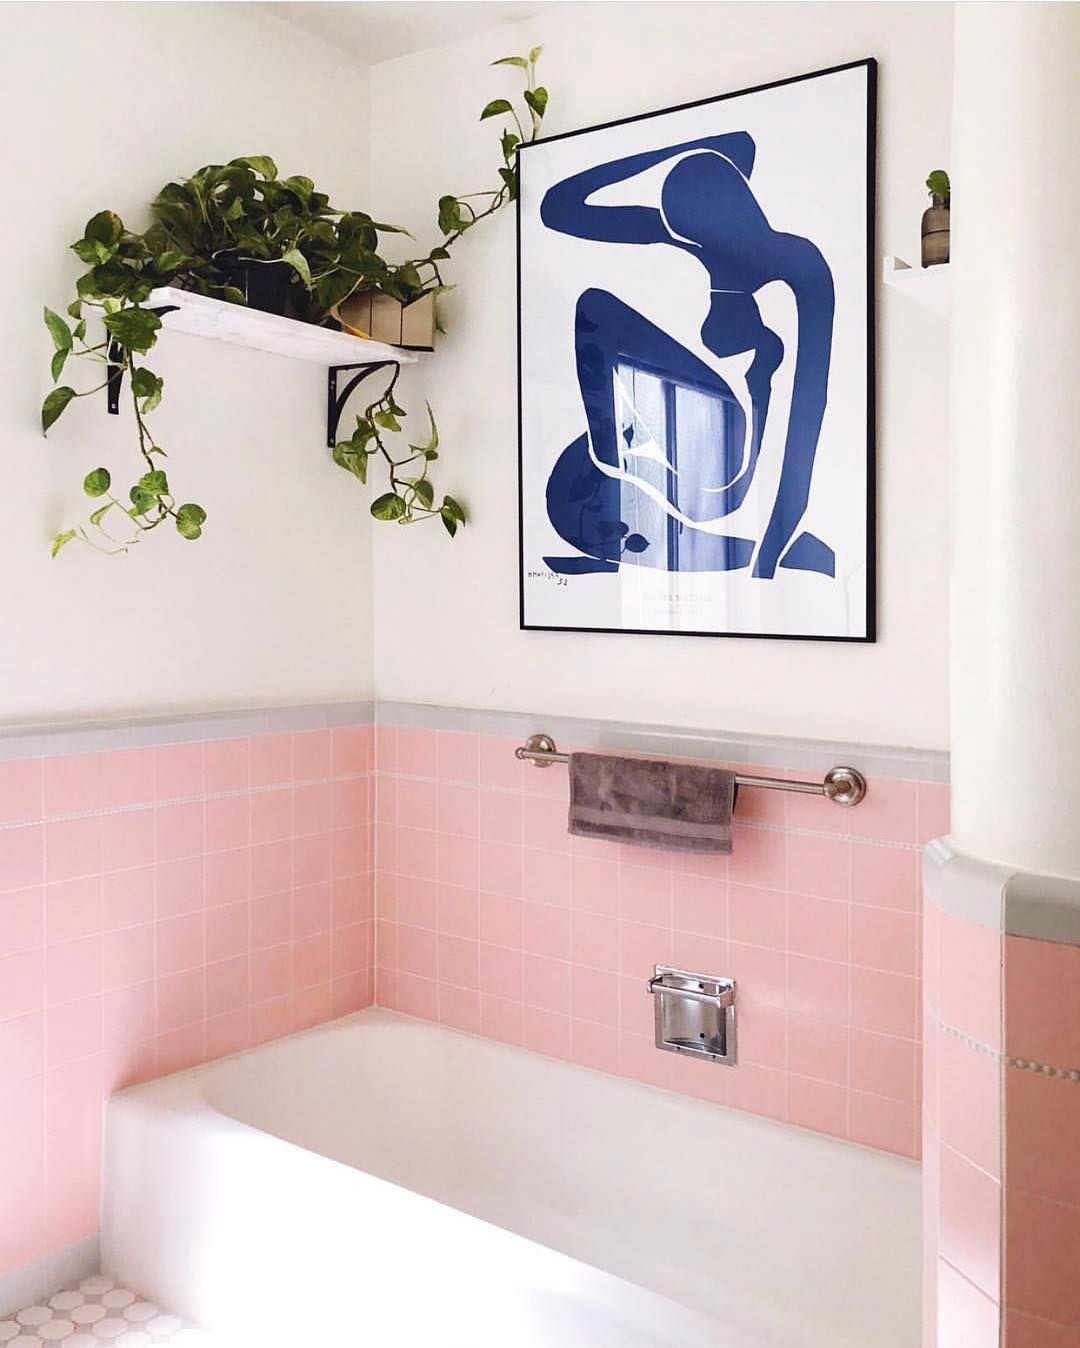 Domino On Instagram Tfw Your Rental Bathroom Has Perfect Pink Tile And Accessories Photo By Jenniferhe Rental Bathroom Pink Bathroom Tiles Pink Tiles